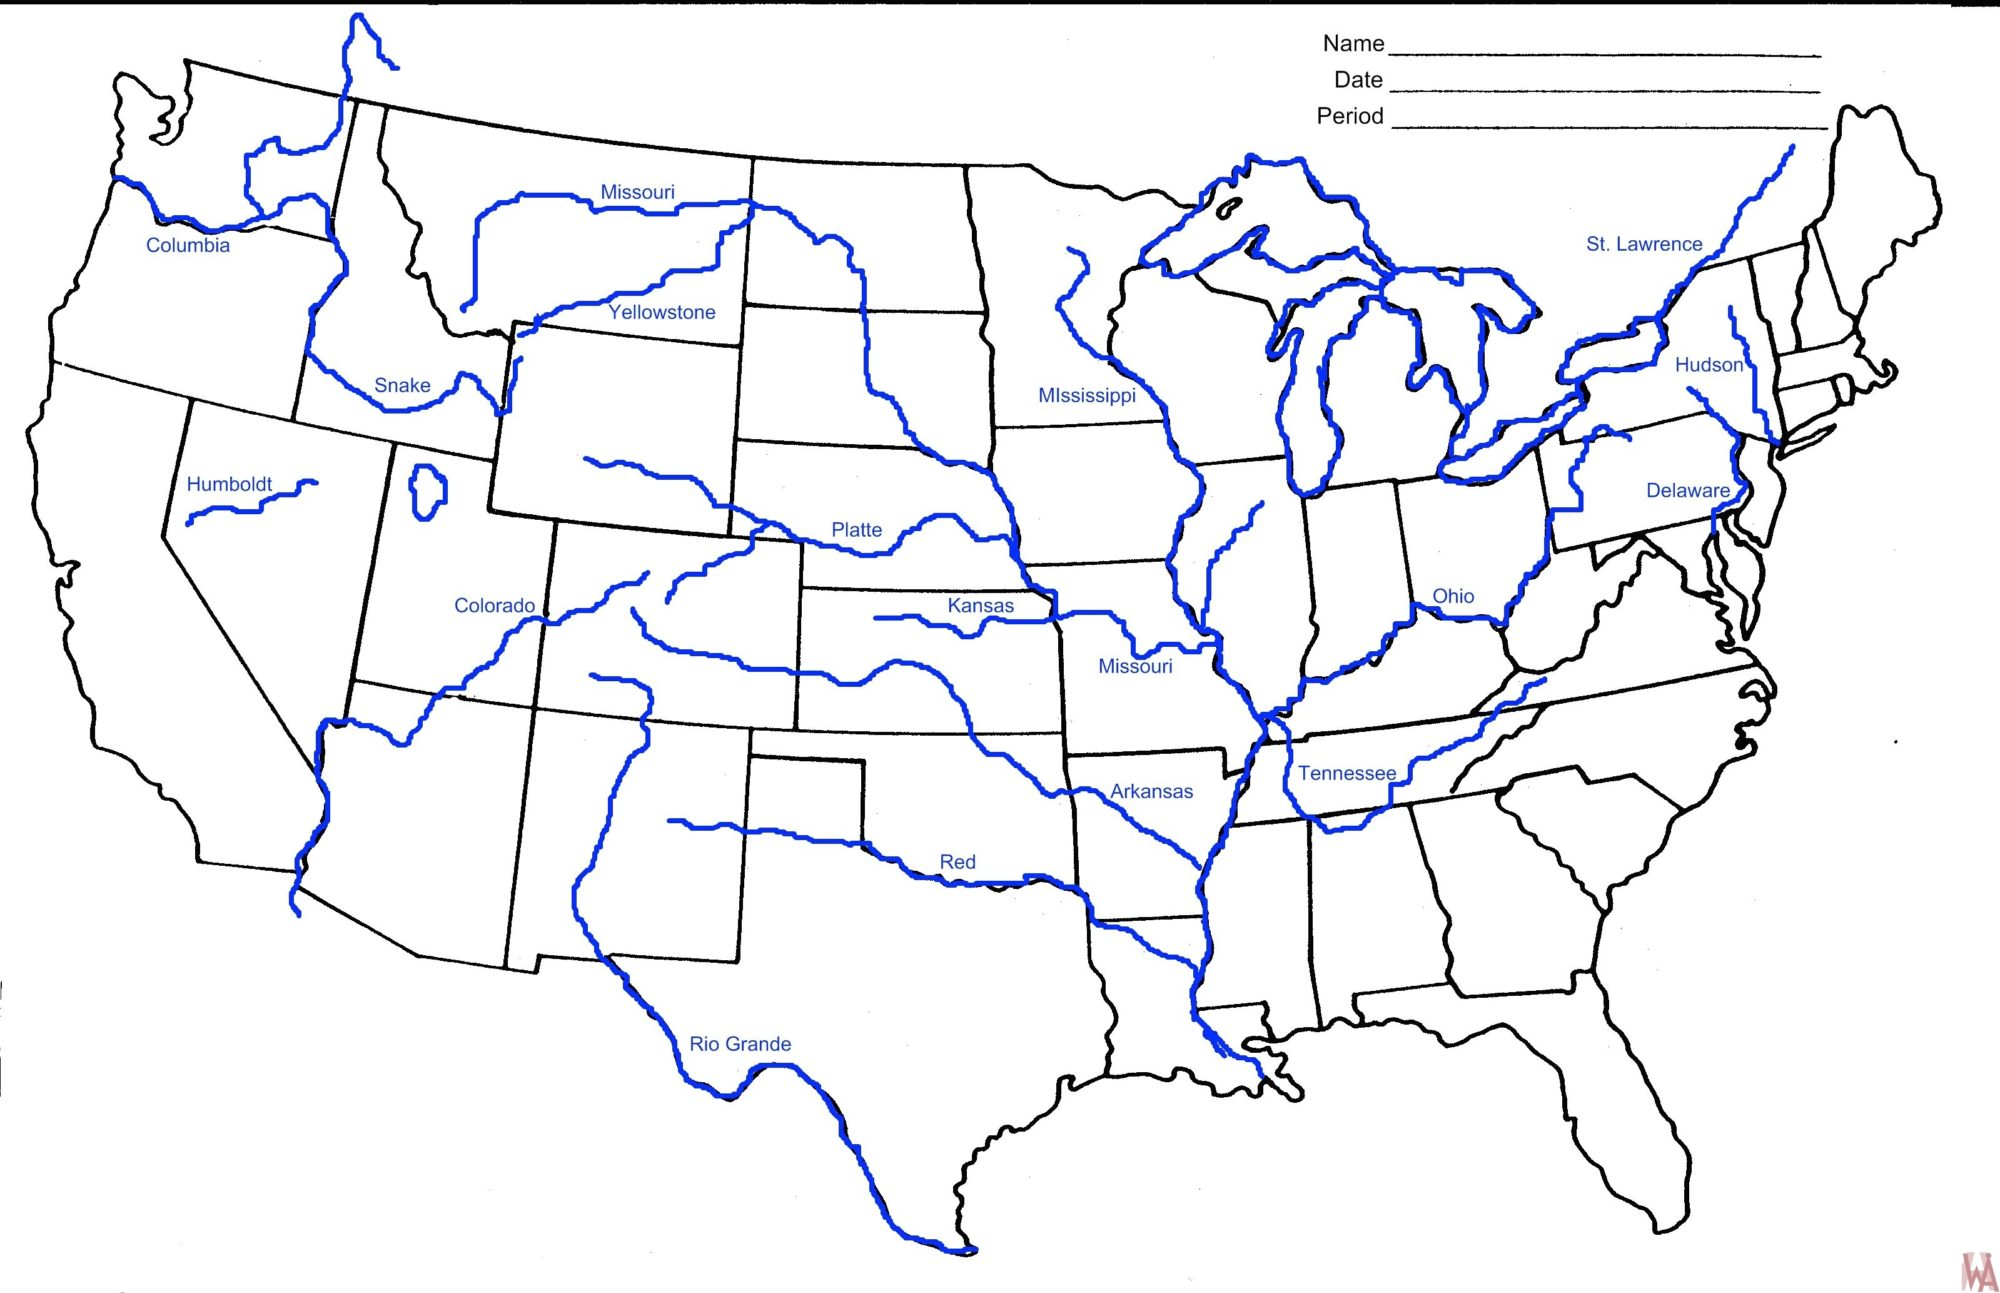 Blank Outline Map Of The United States With Rivers Whatsanswer - Map-us-rivers